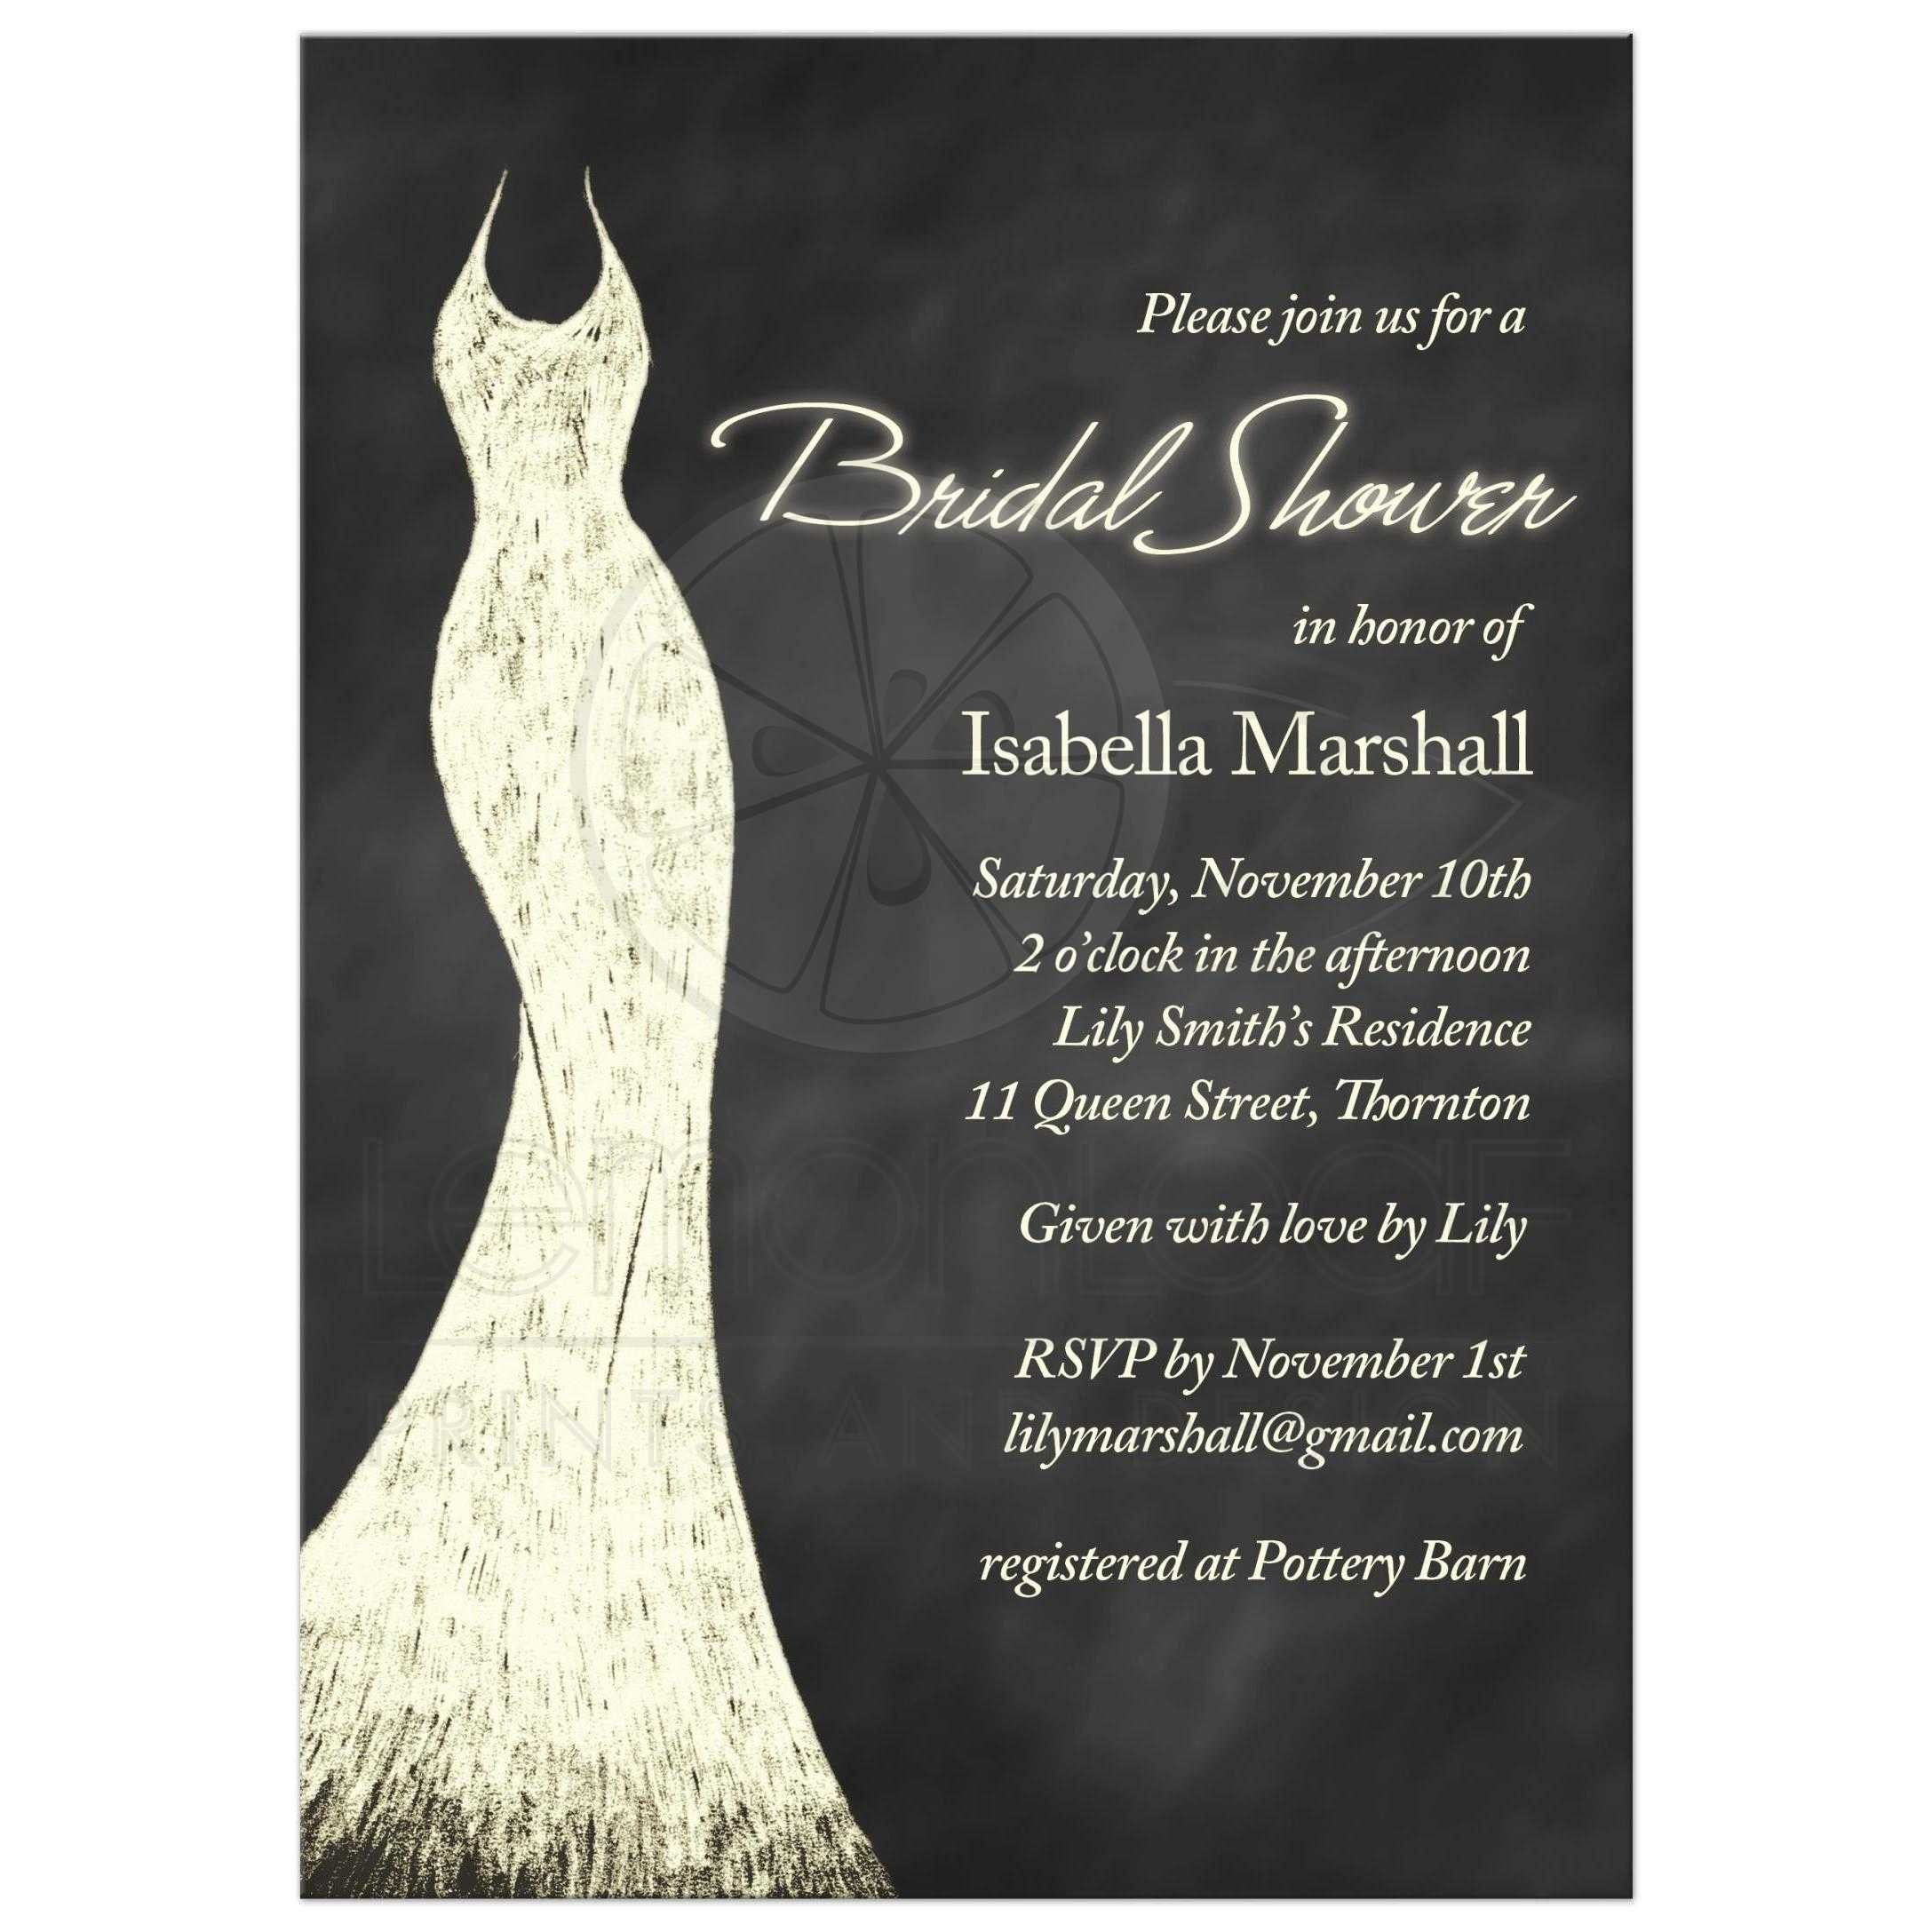 Free Bridal Shower Invitations Fresh Designs Diy Chalkboard Bridal Shower Invitations Plus Chalkboard Elegant Free